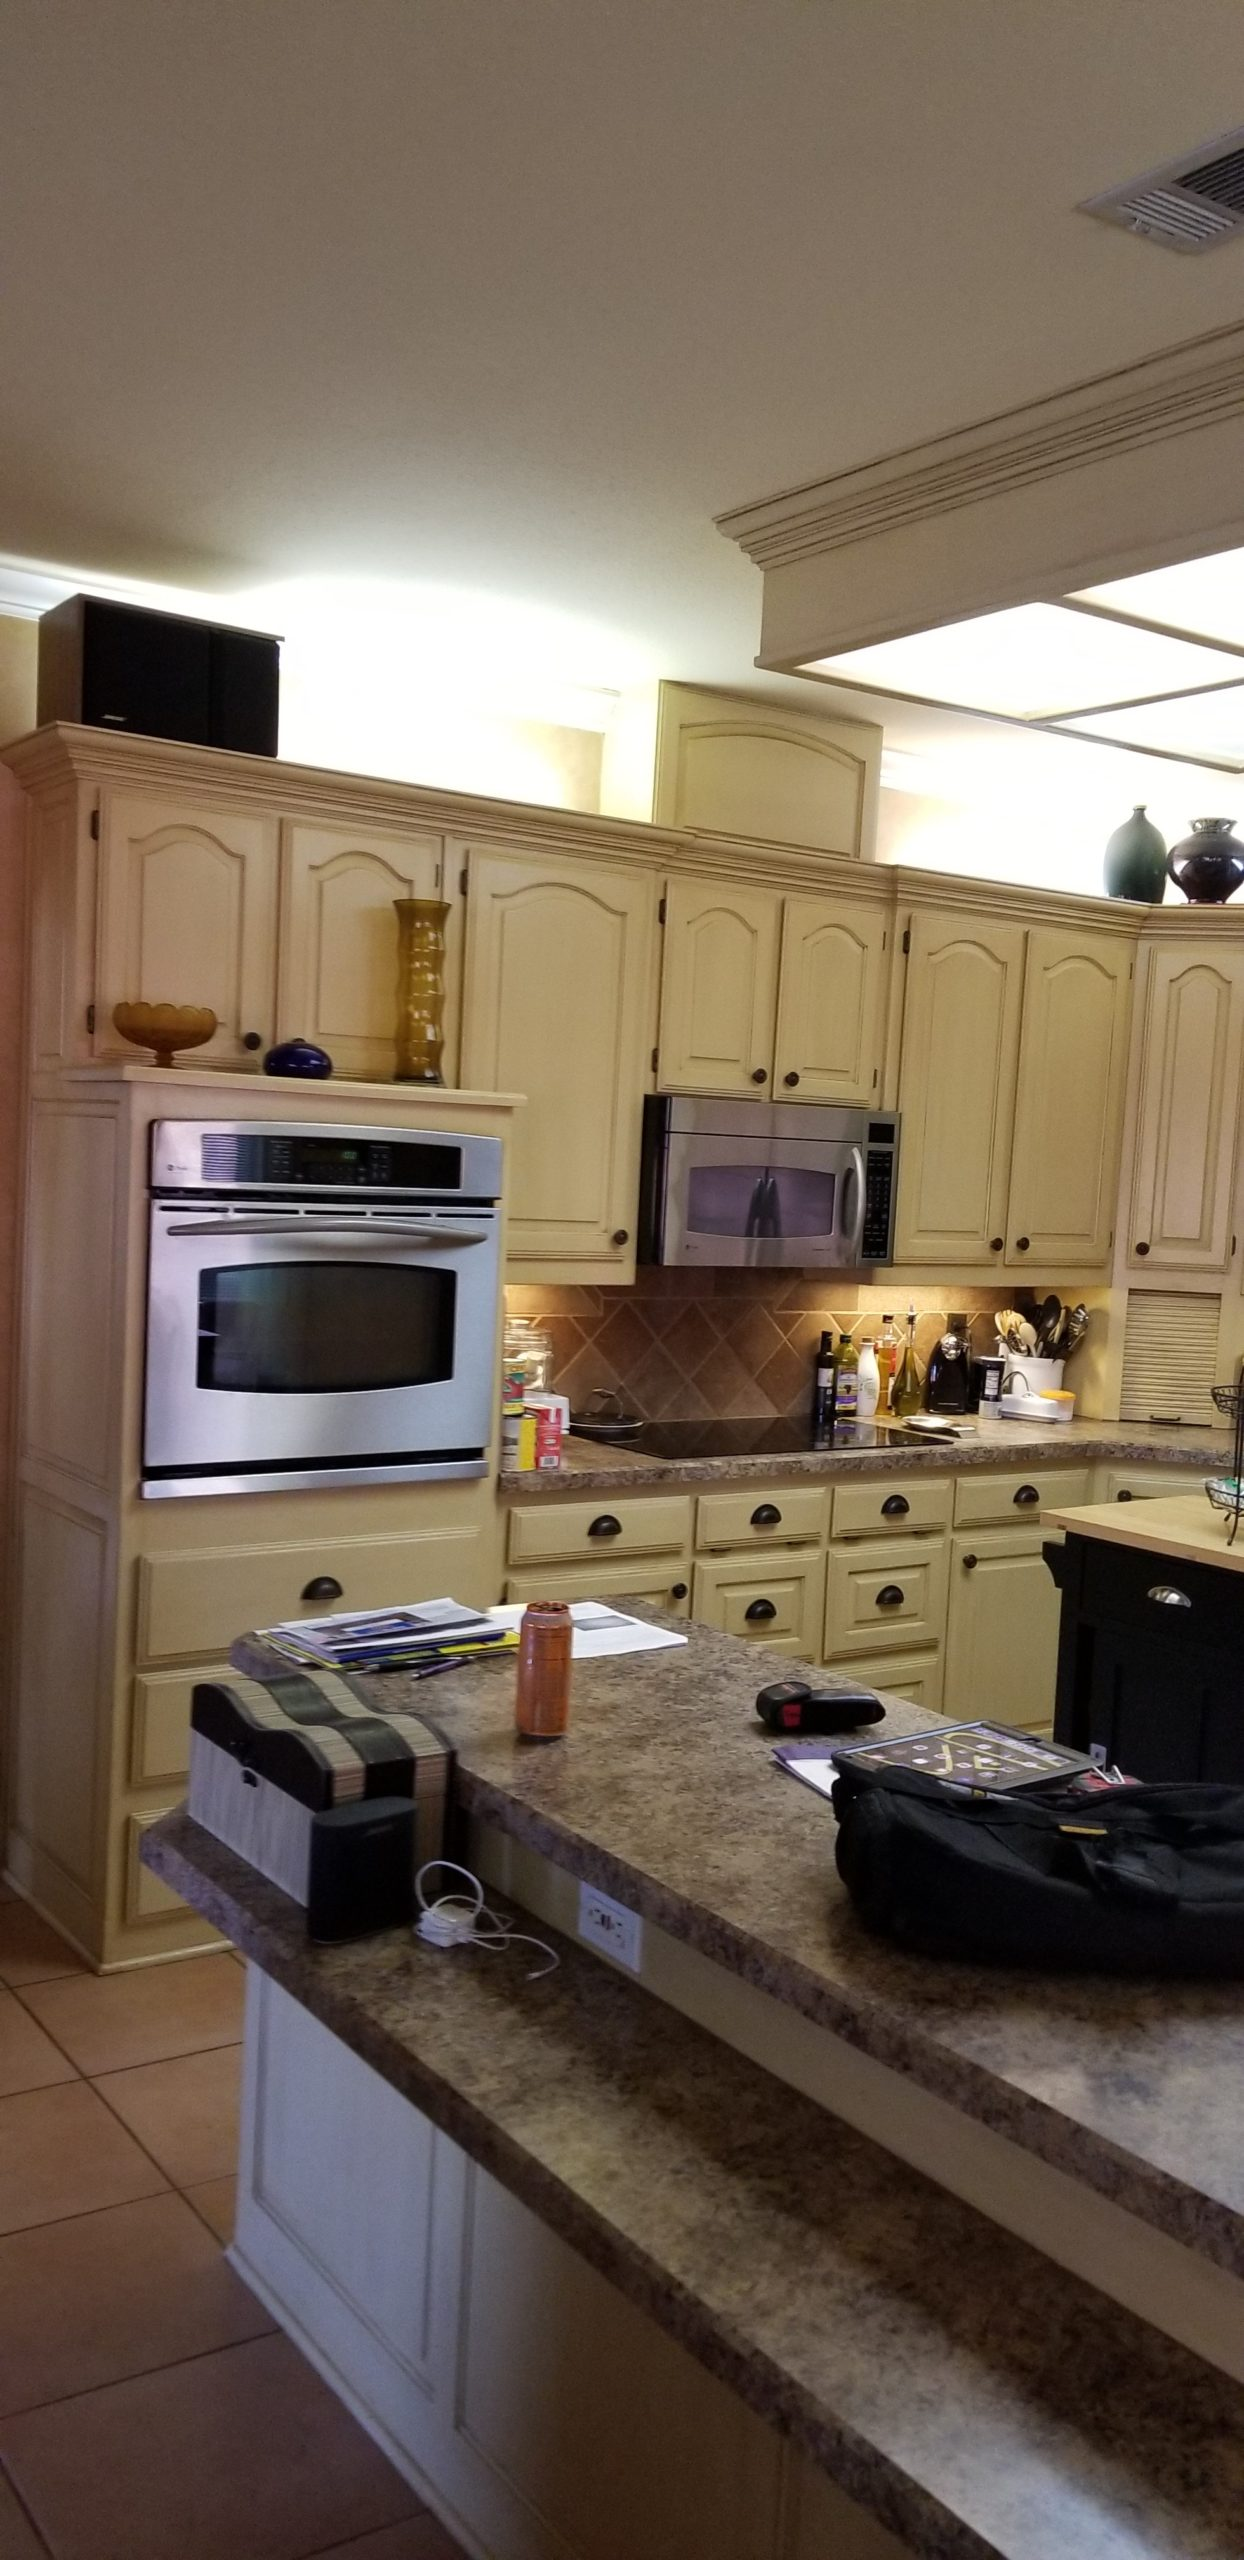 Image of traditional style kitchen before remodel-2